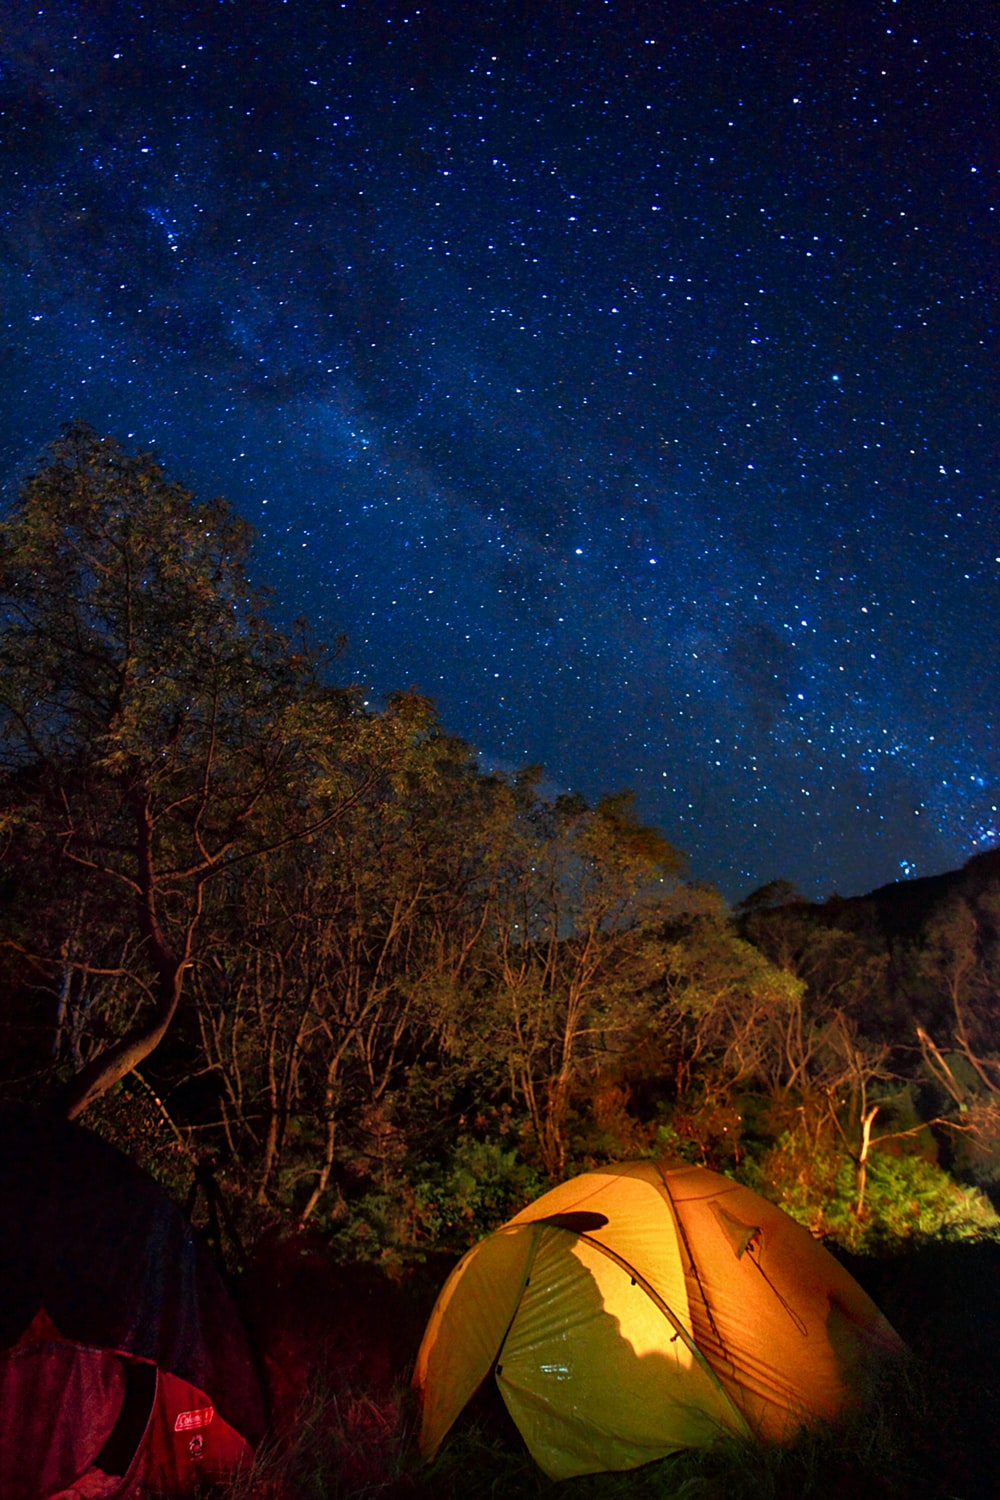 two tents under starry night